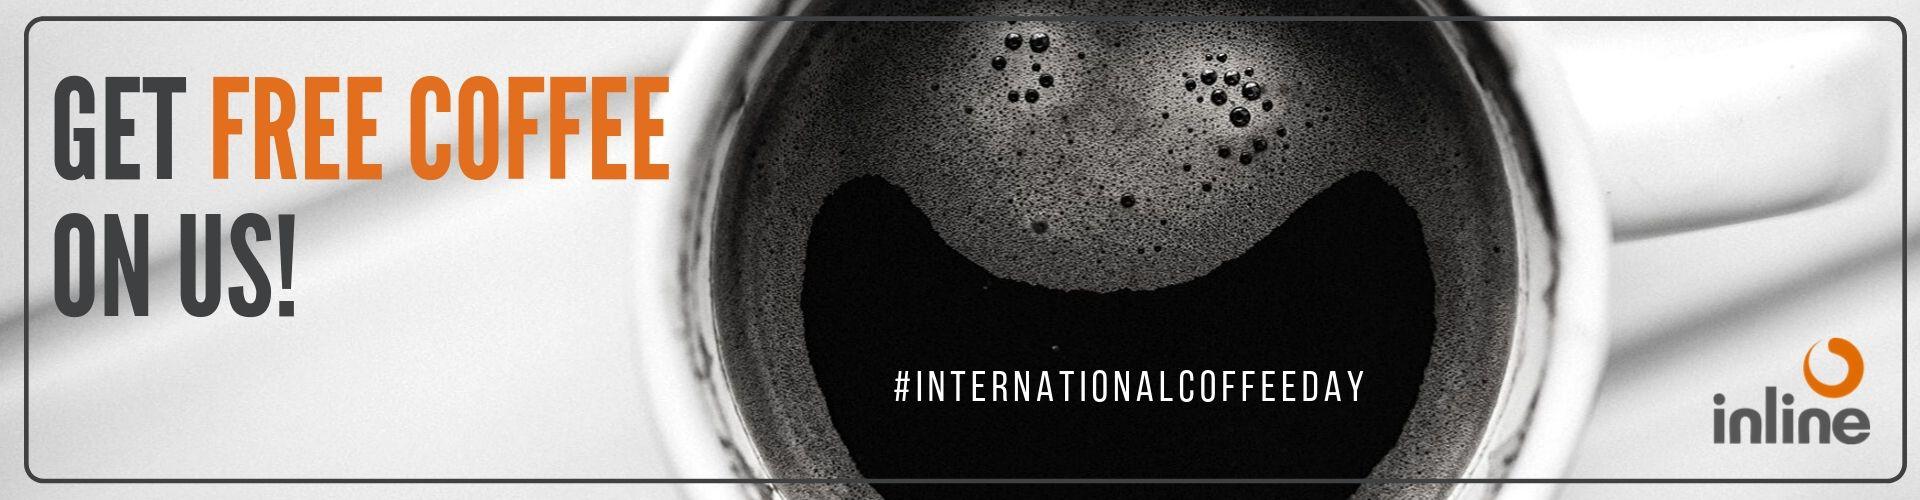 International Coffee Day Promotion - Get Free Coffee On Us!